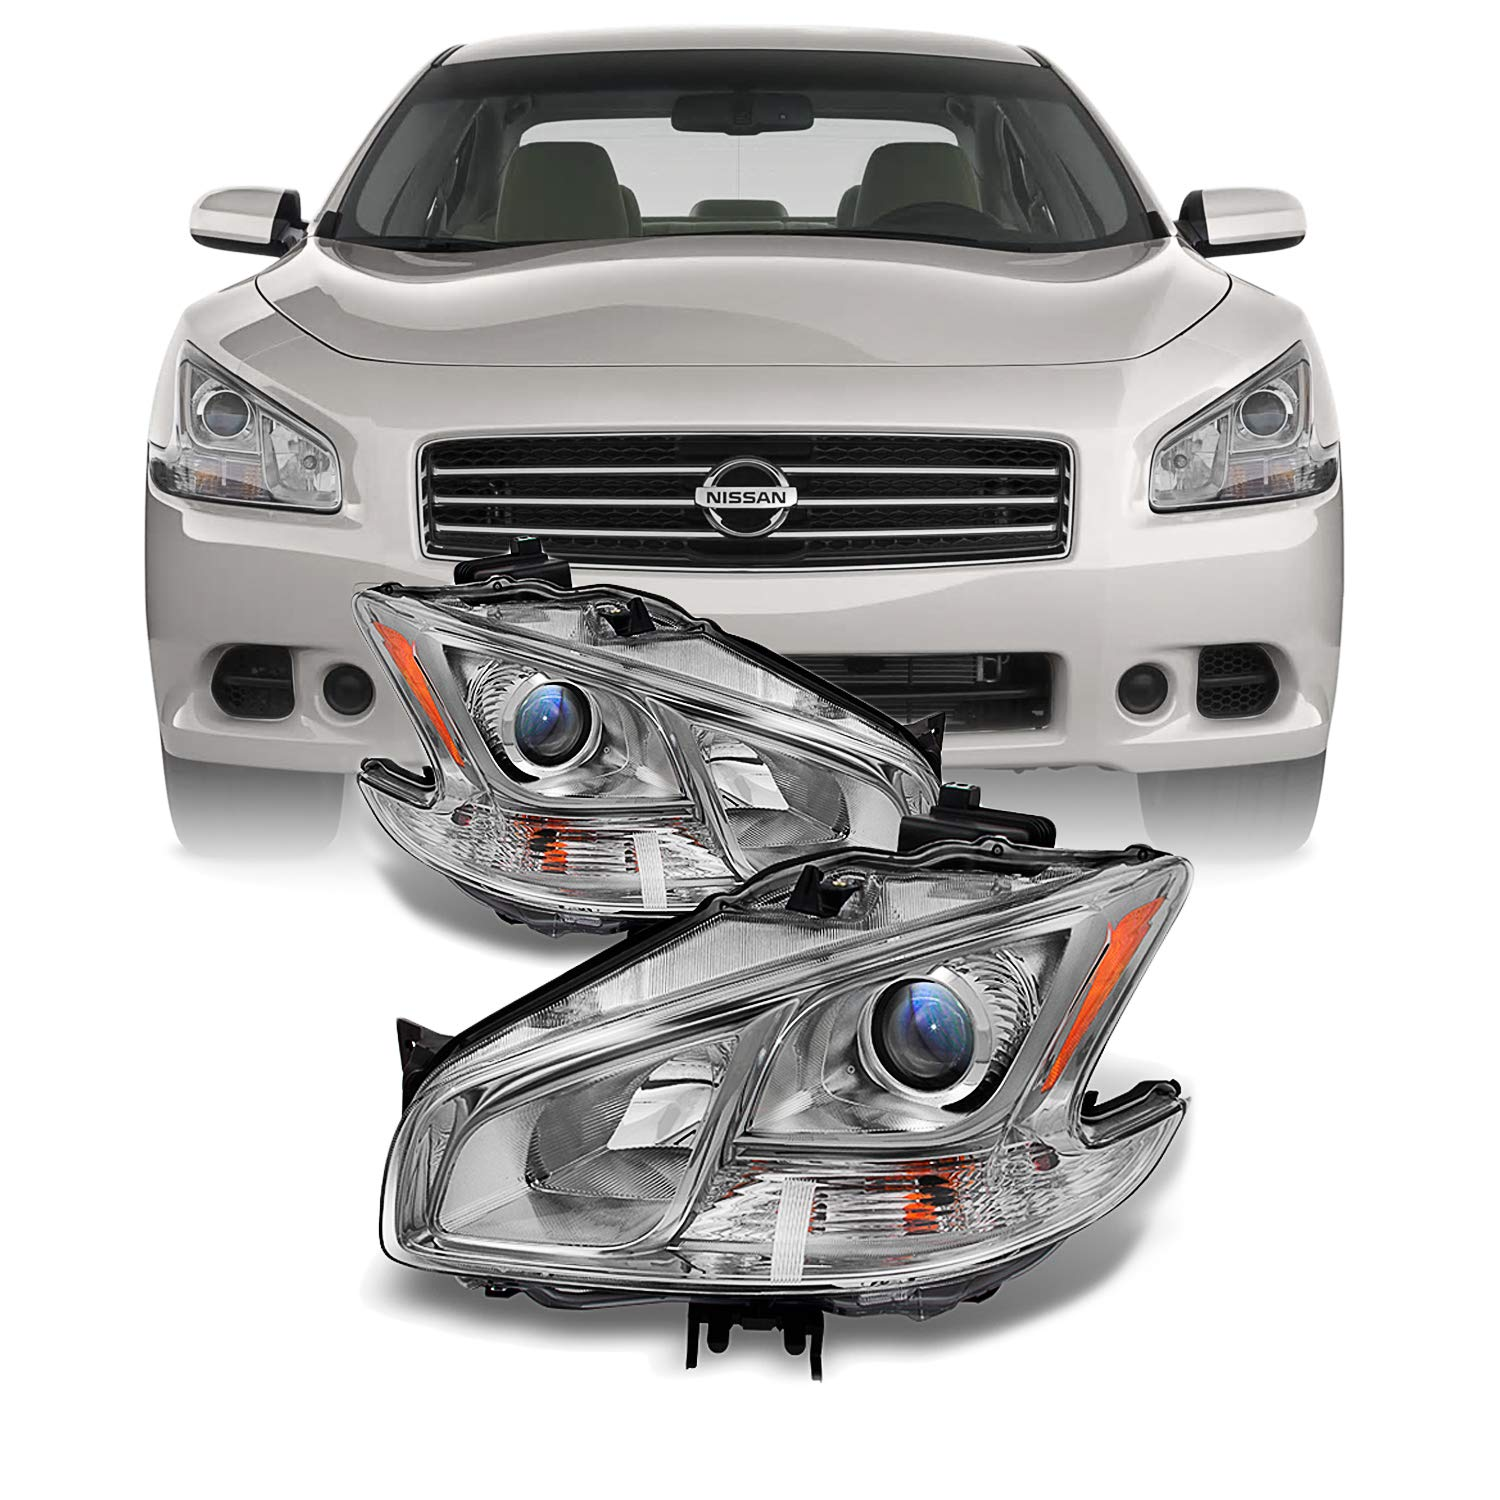 For Maxima 4Dr Sedan Projector Halogen Type Headlights Driver Left + Passenger Right Replacement